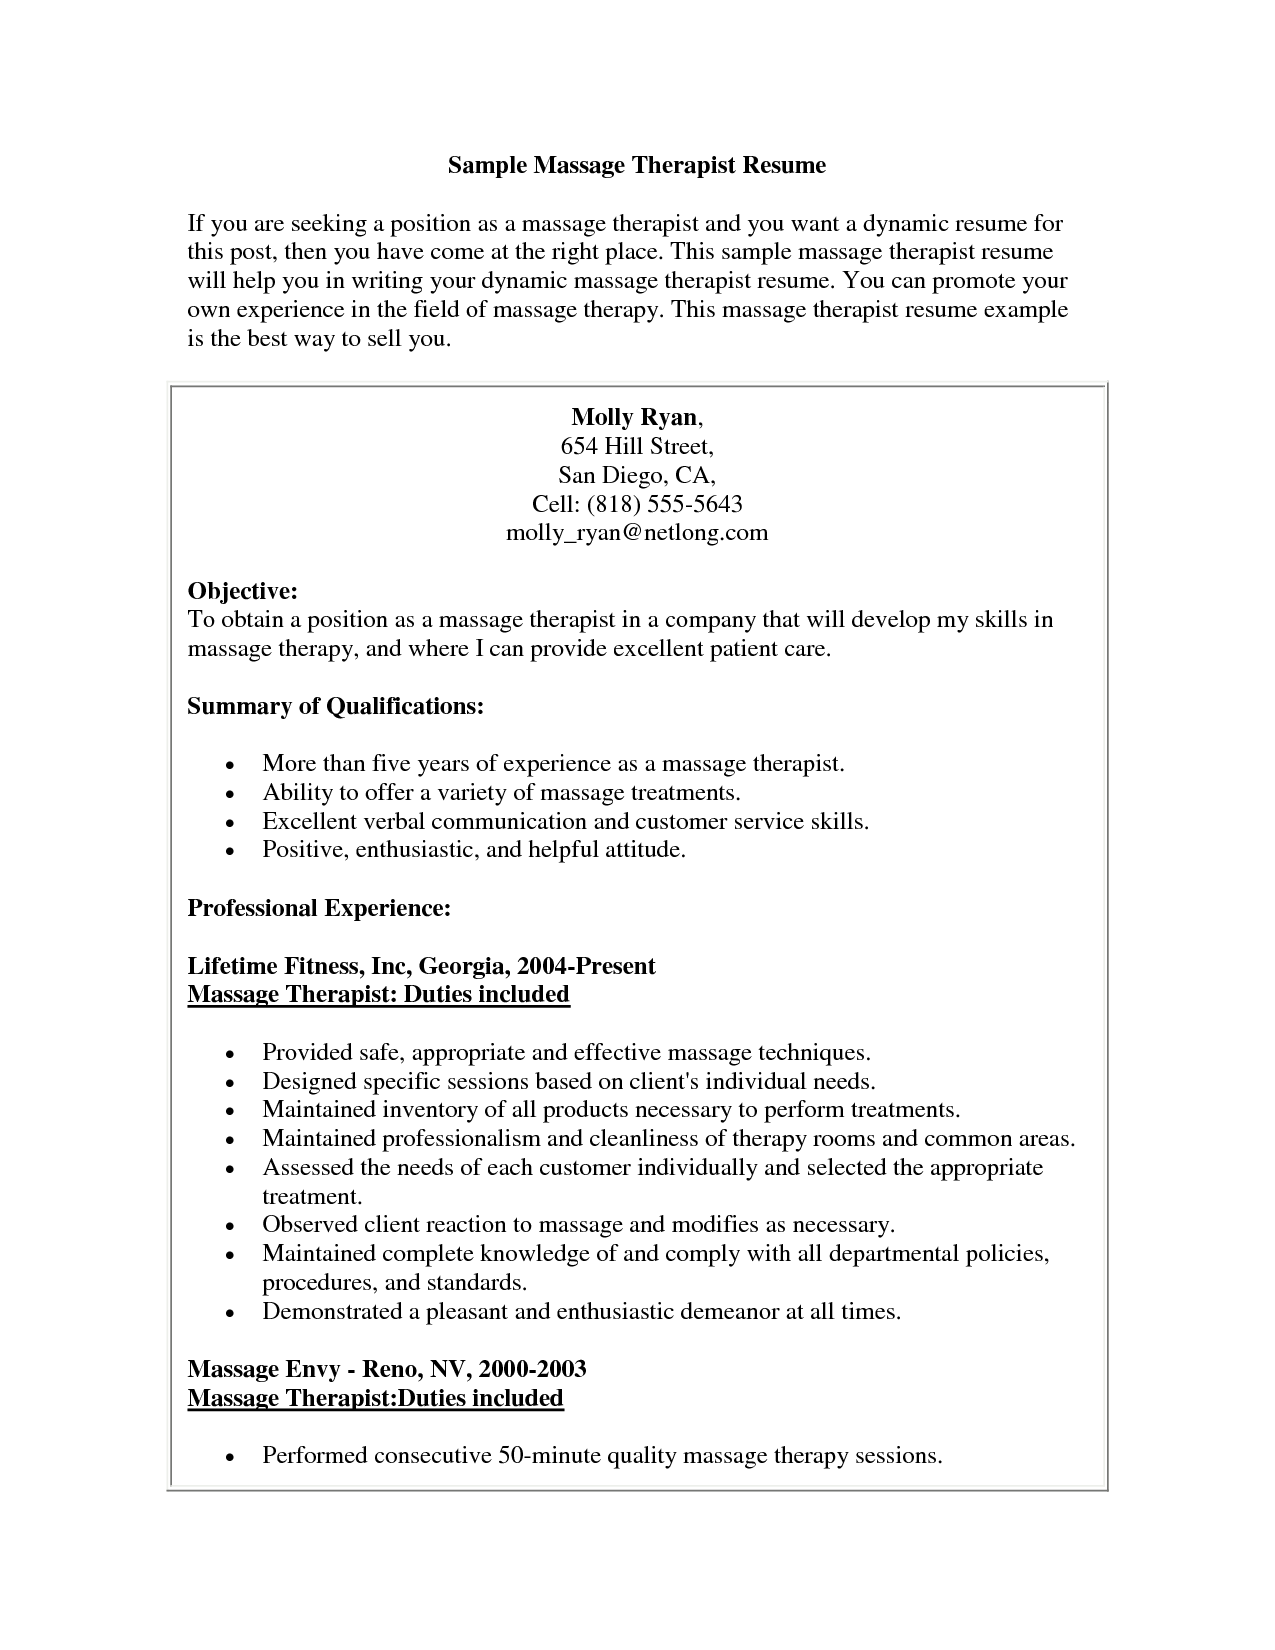 Awesome Massage Therapist Resume Sample Massage Therapist Resume Sample, Massage  Therapist Resume Objective, Massage Therapist